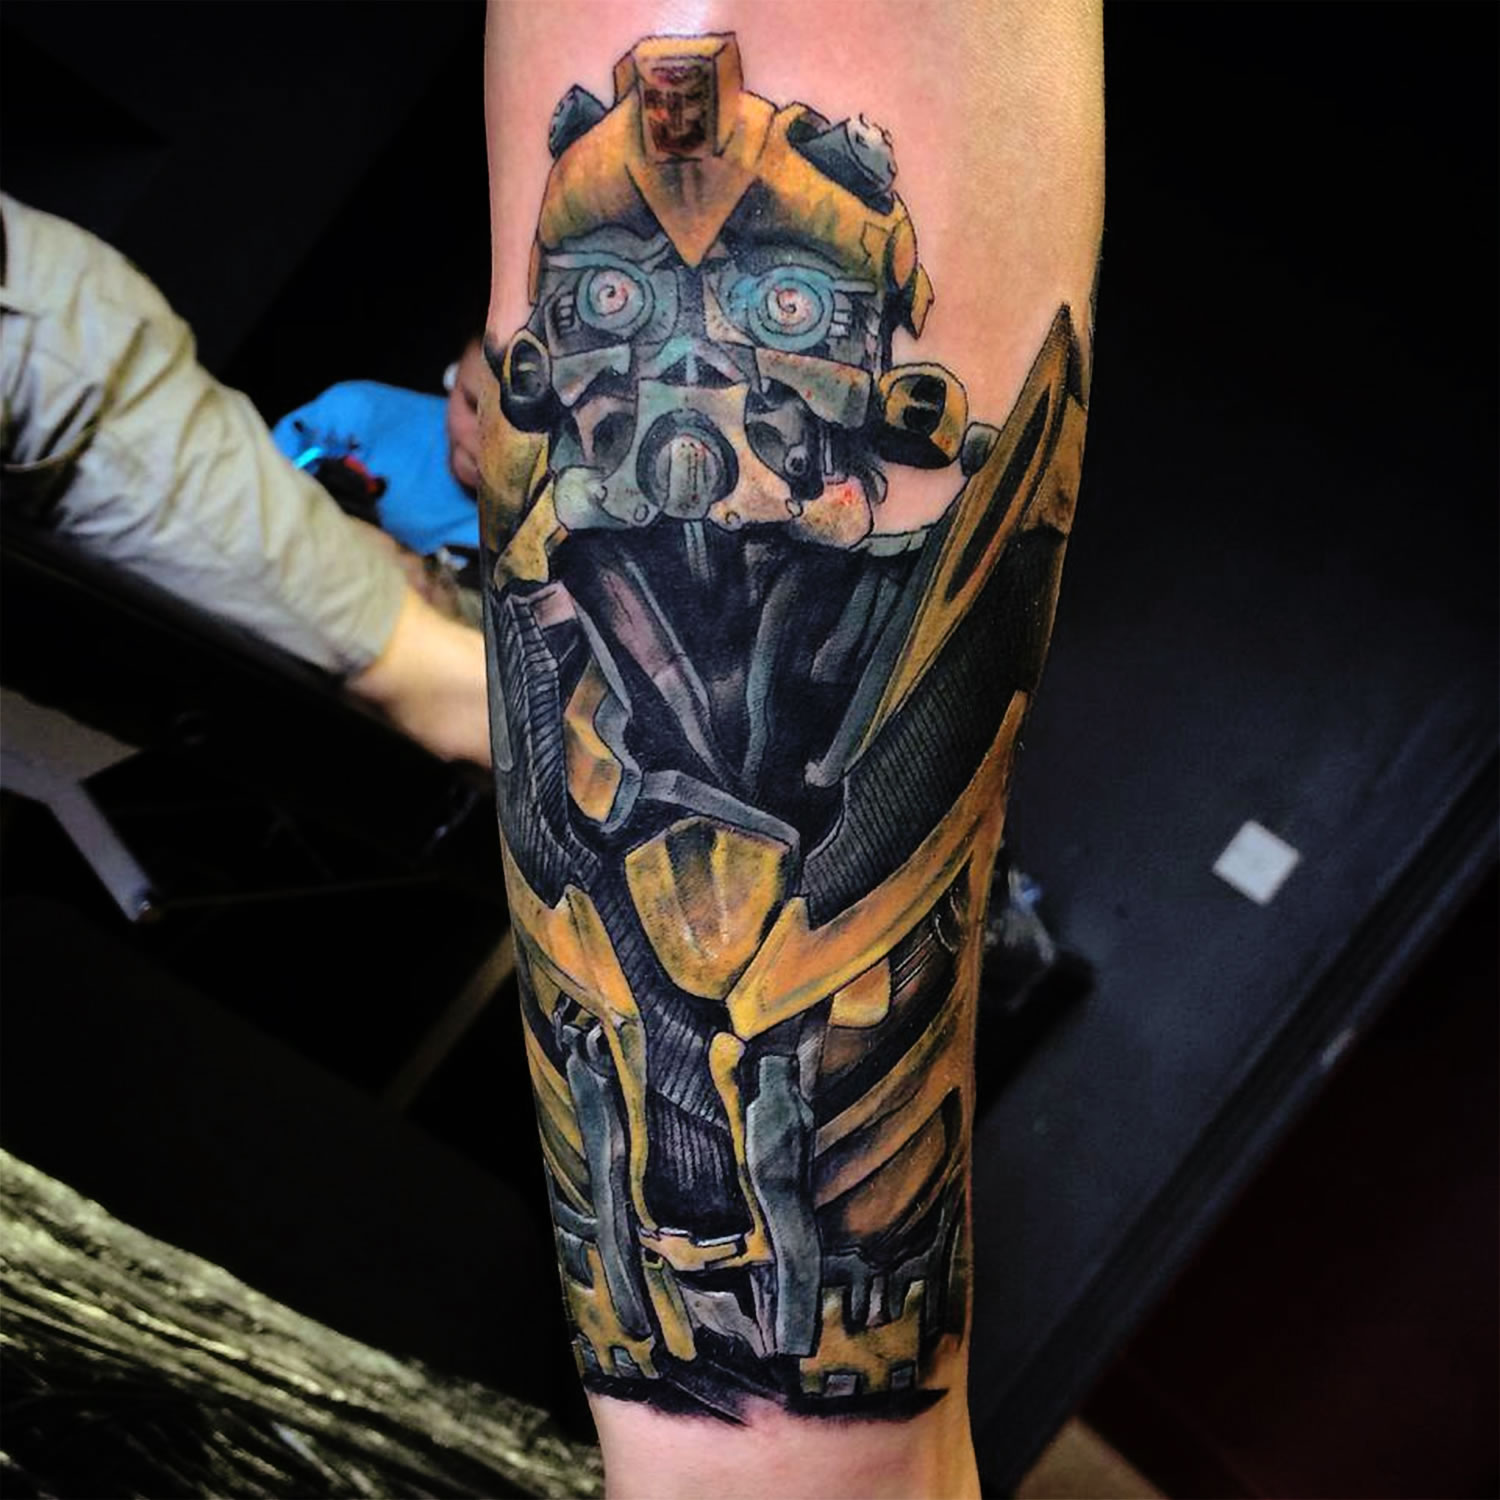 Tattoo Ideas Video: Transformers Tattoos Designs, Ideas And Meaning